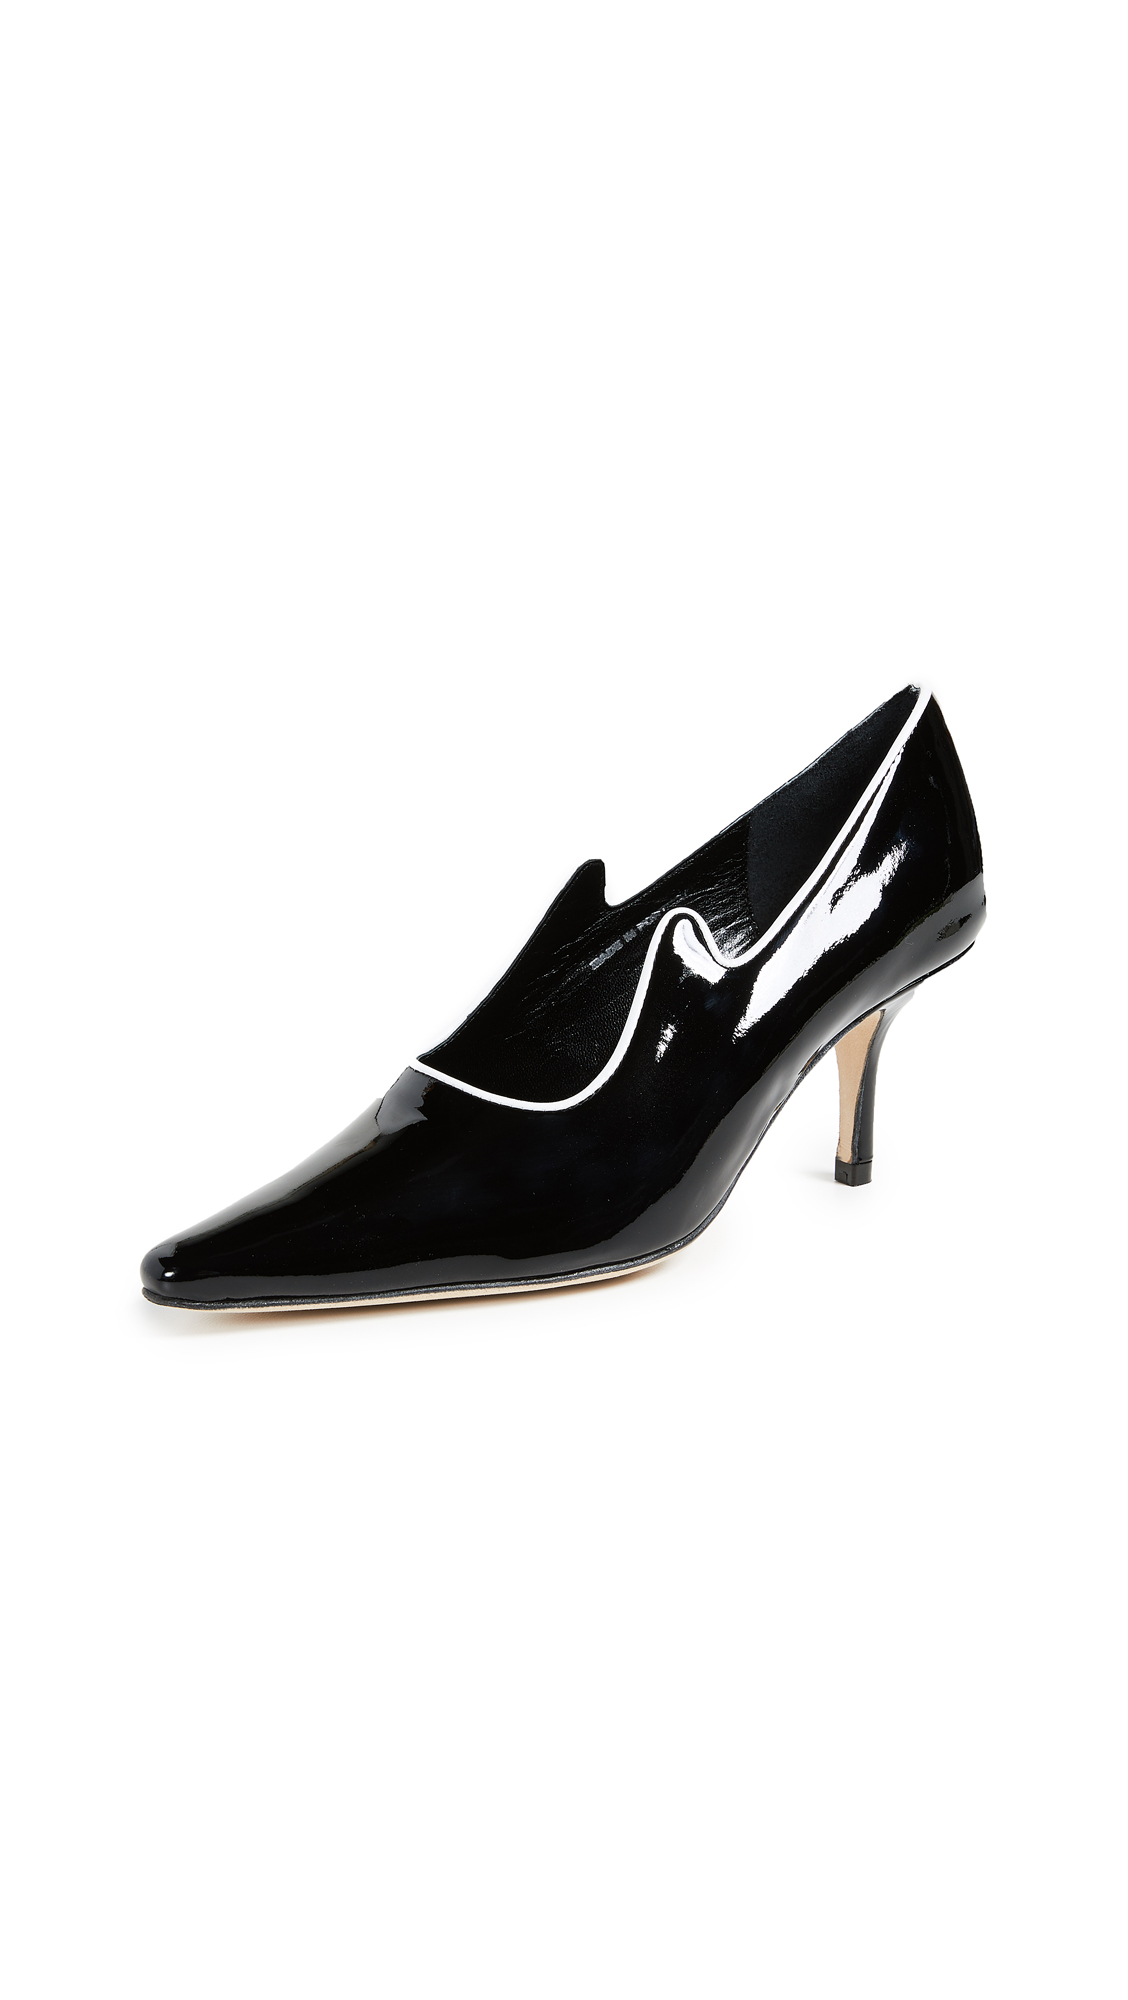 Dorateymur Groupie Jazz Pumps - Black/White